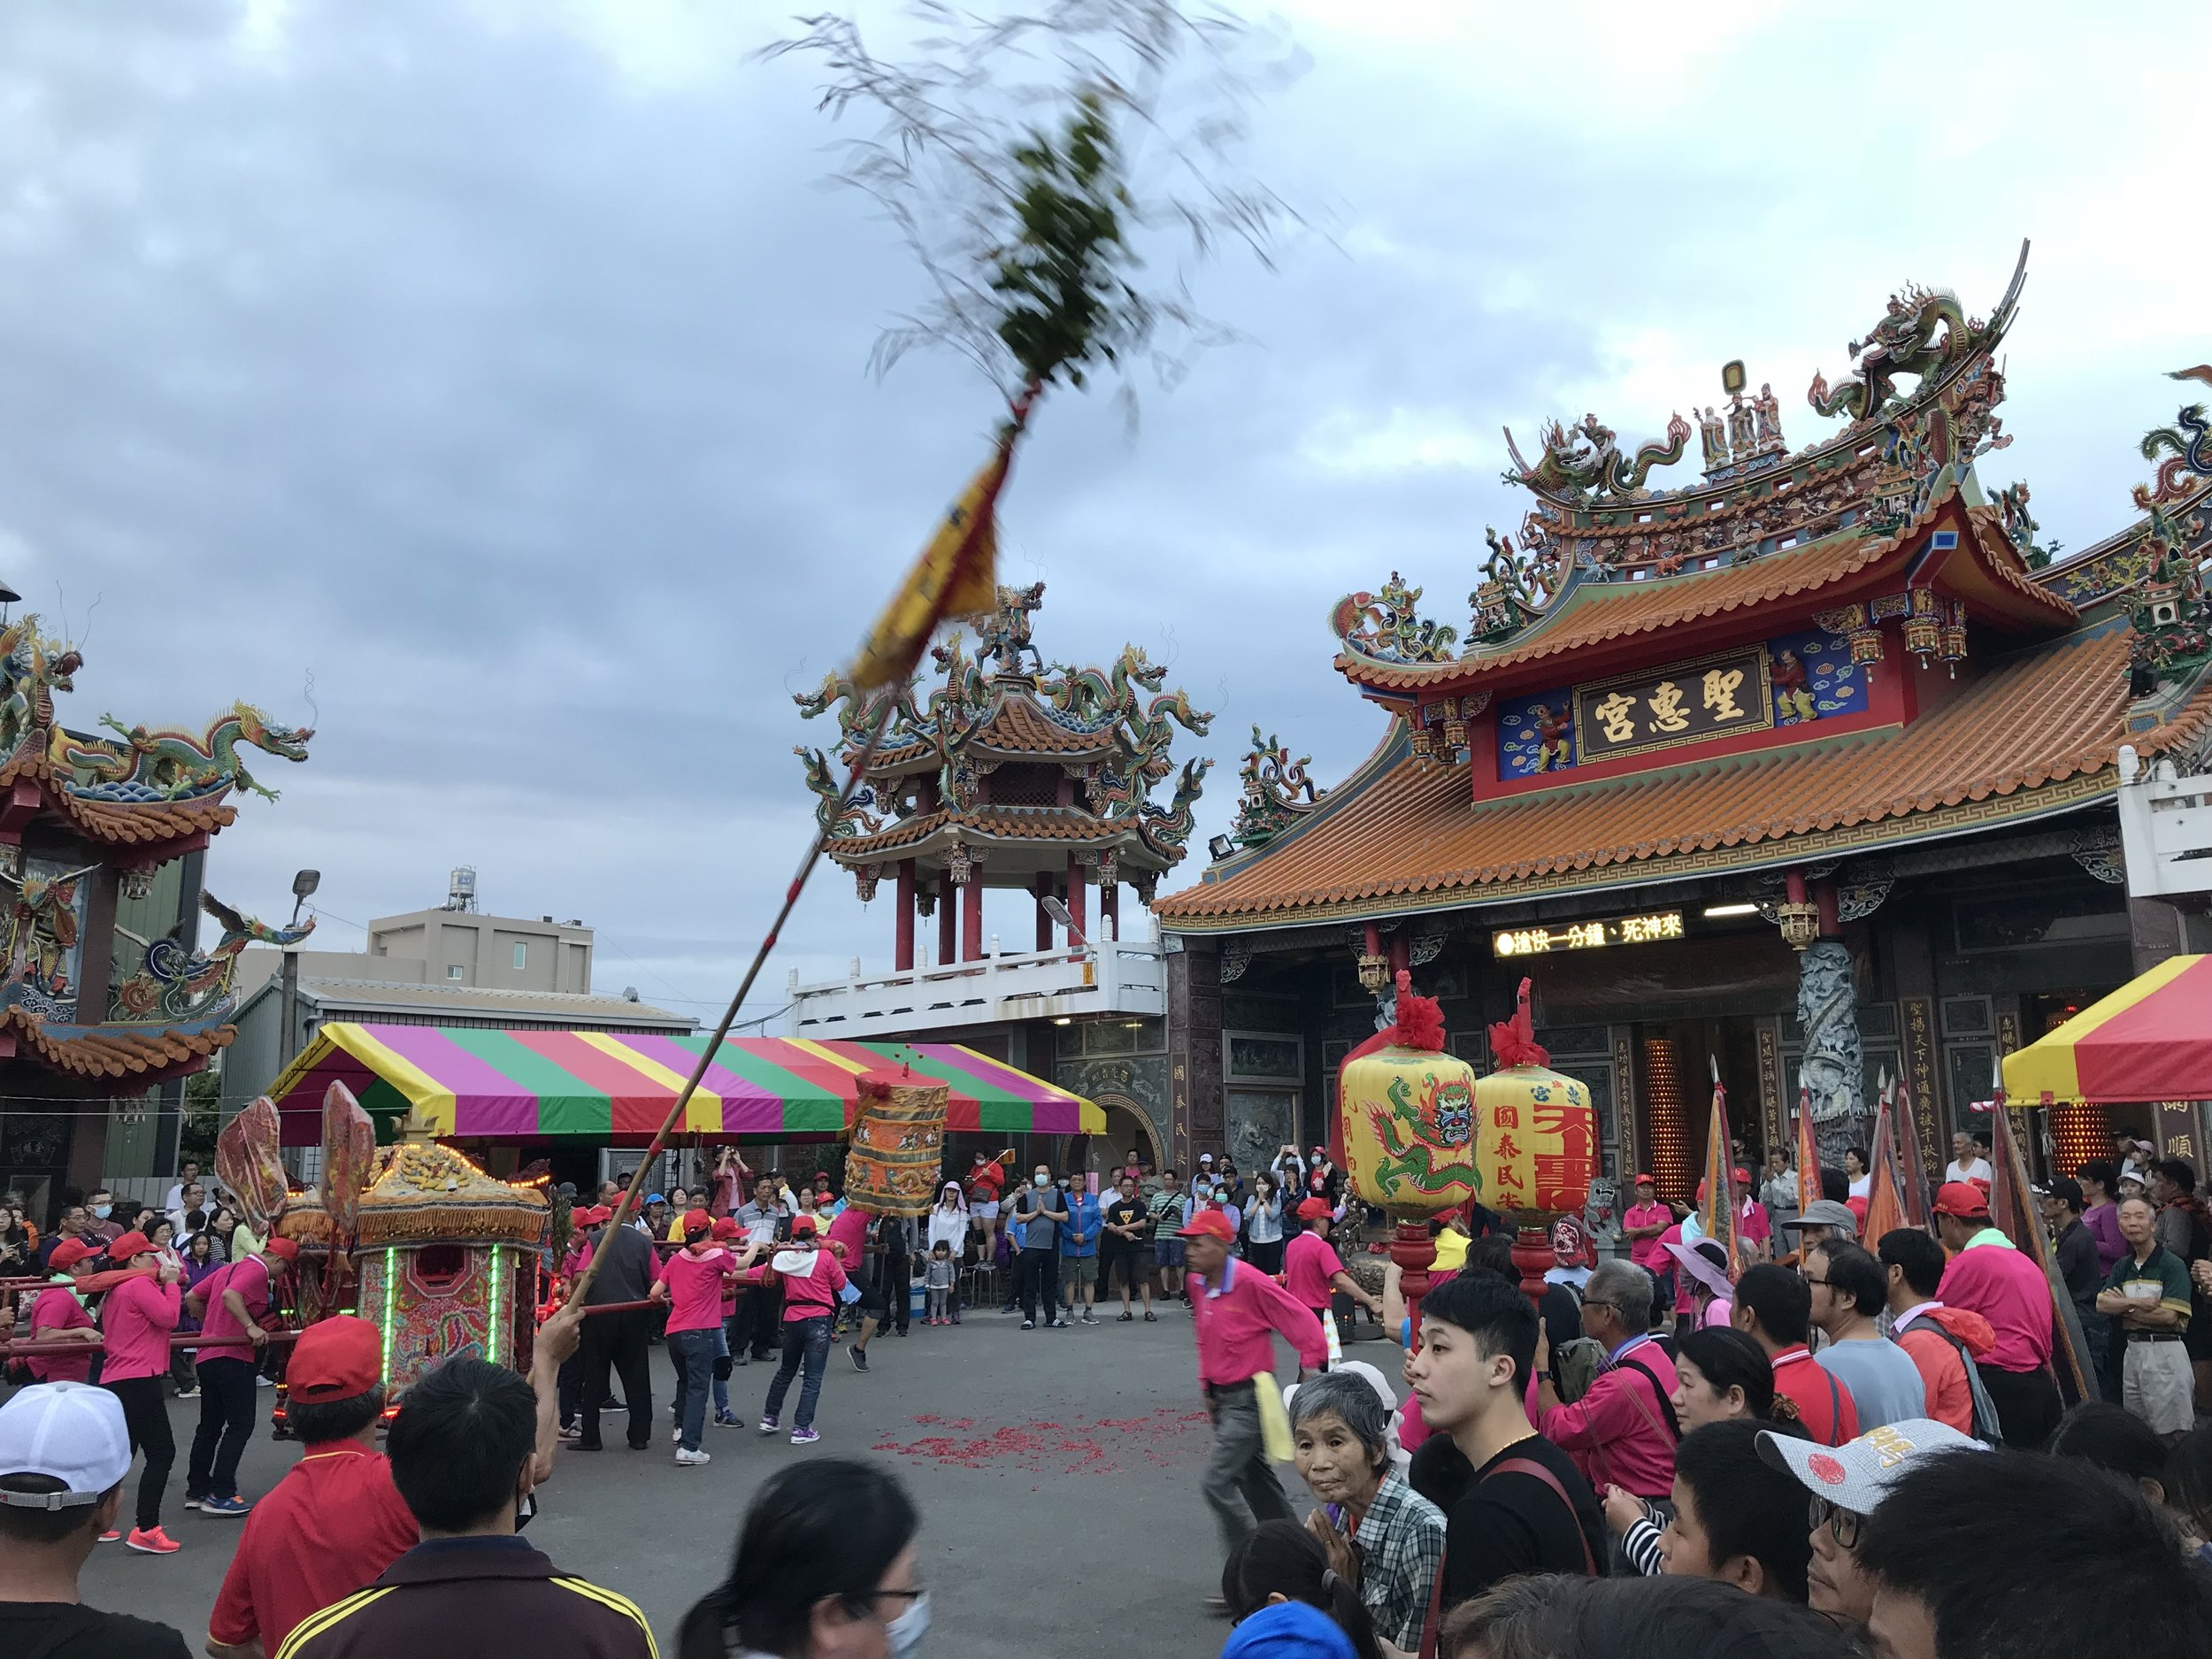 Mazu enters Shenghui Temple in Changhua County, Taiwan, where pilgrims wait with offerings to be blessed by the sea goddess. (Christopher Stein SFS '20)